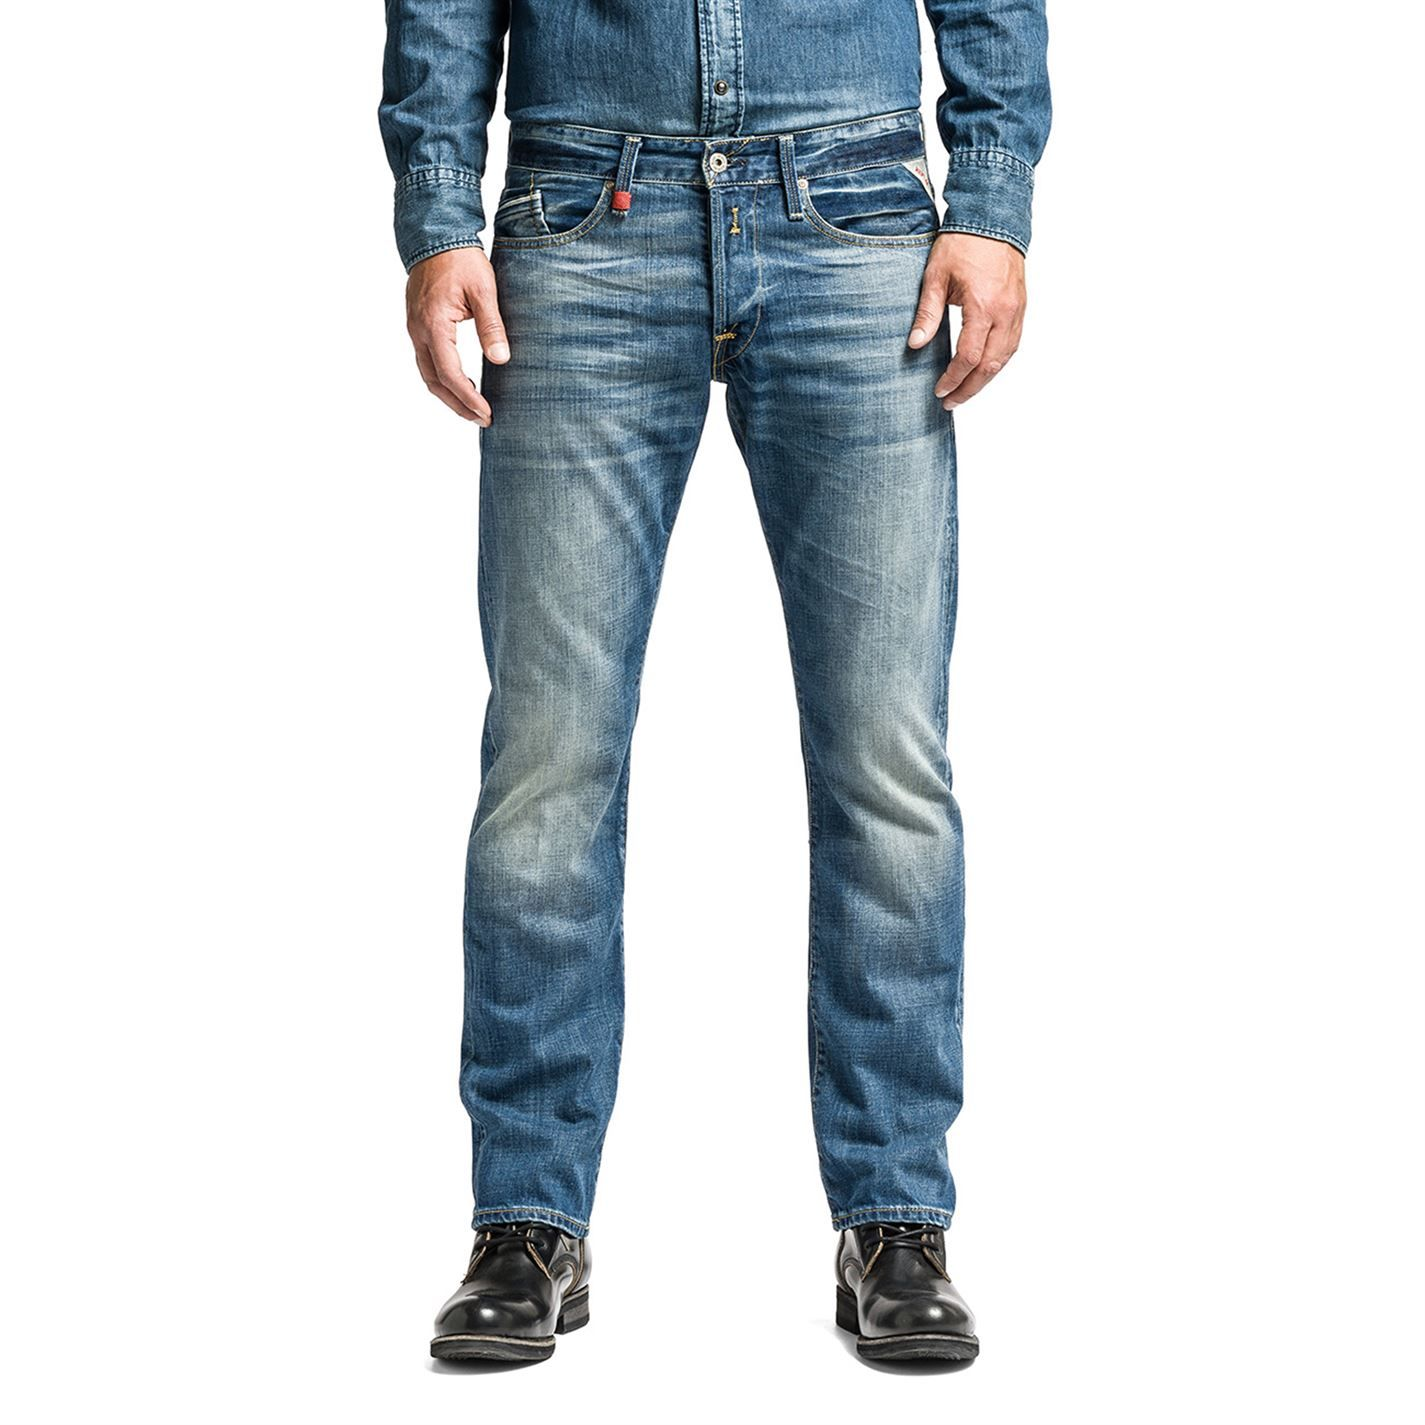 Mens Waitom Straight Jeans Replay For Sale Discount Sale Discount Excellent mablVyZ3qZ